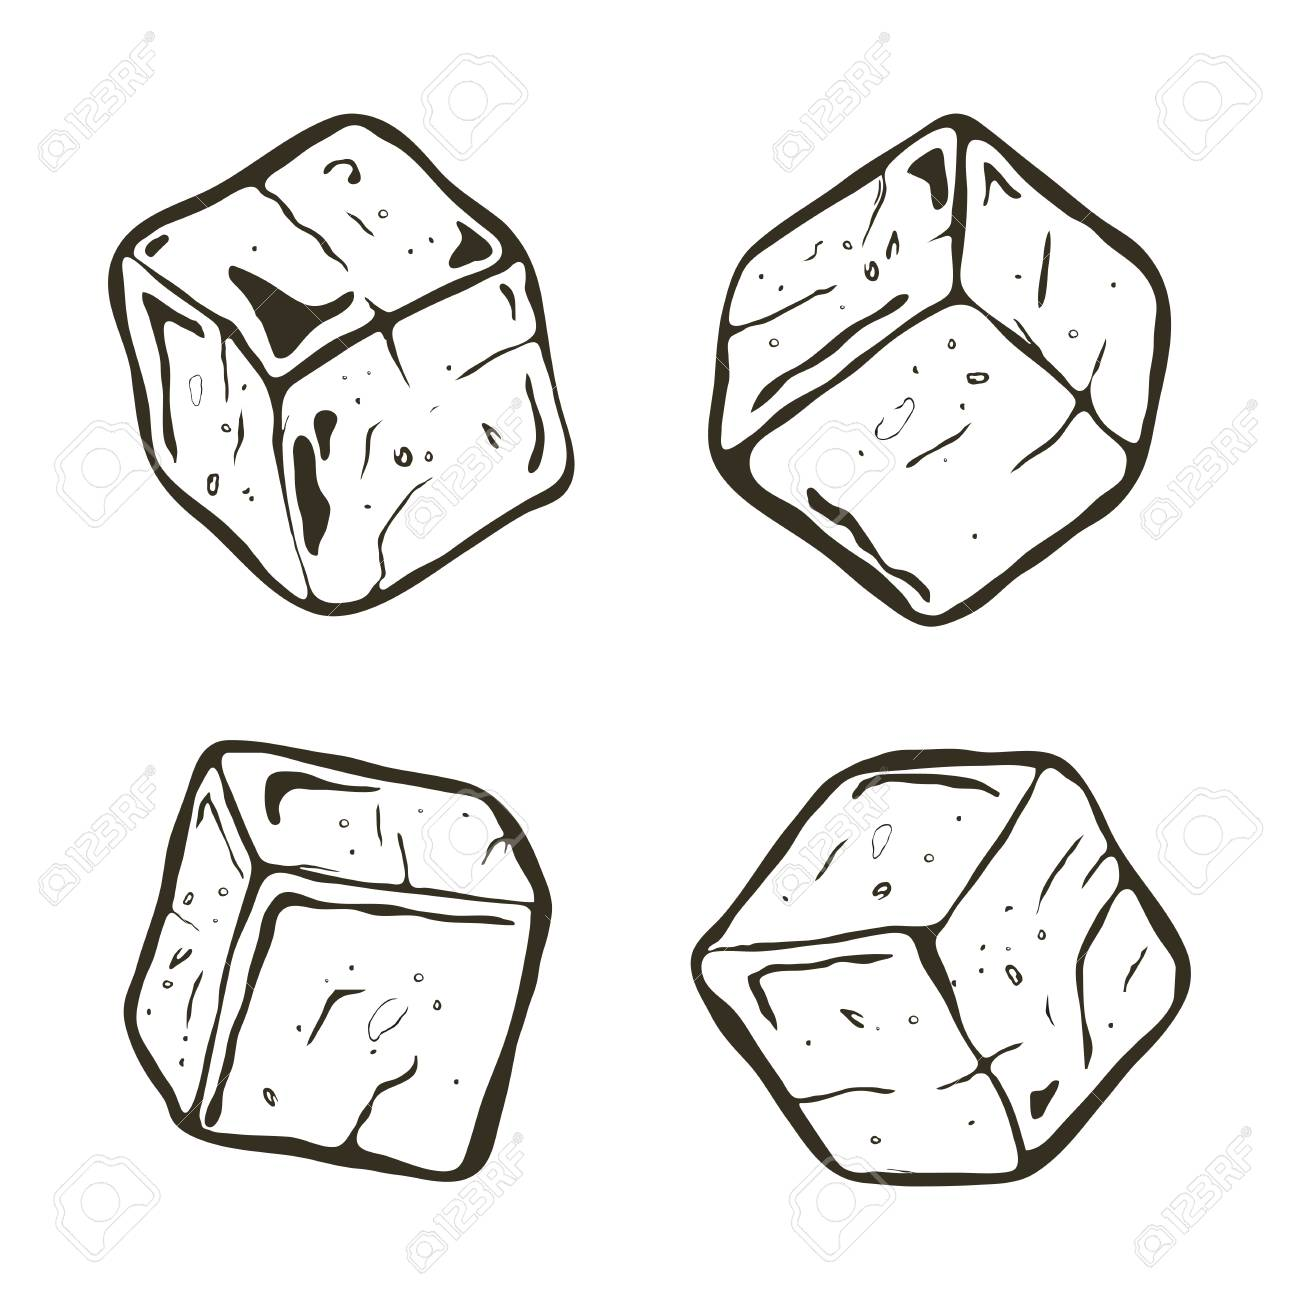 vector black and white ice cubes transparent ice cube chunks royalty free cliparts vectors and stock illustration image 105536734 vector black and white ice cubes transparent ice cube chunks